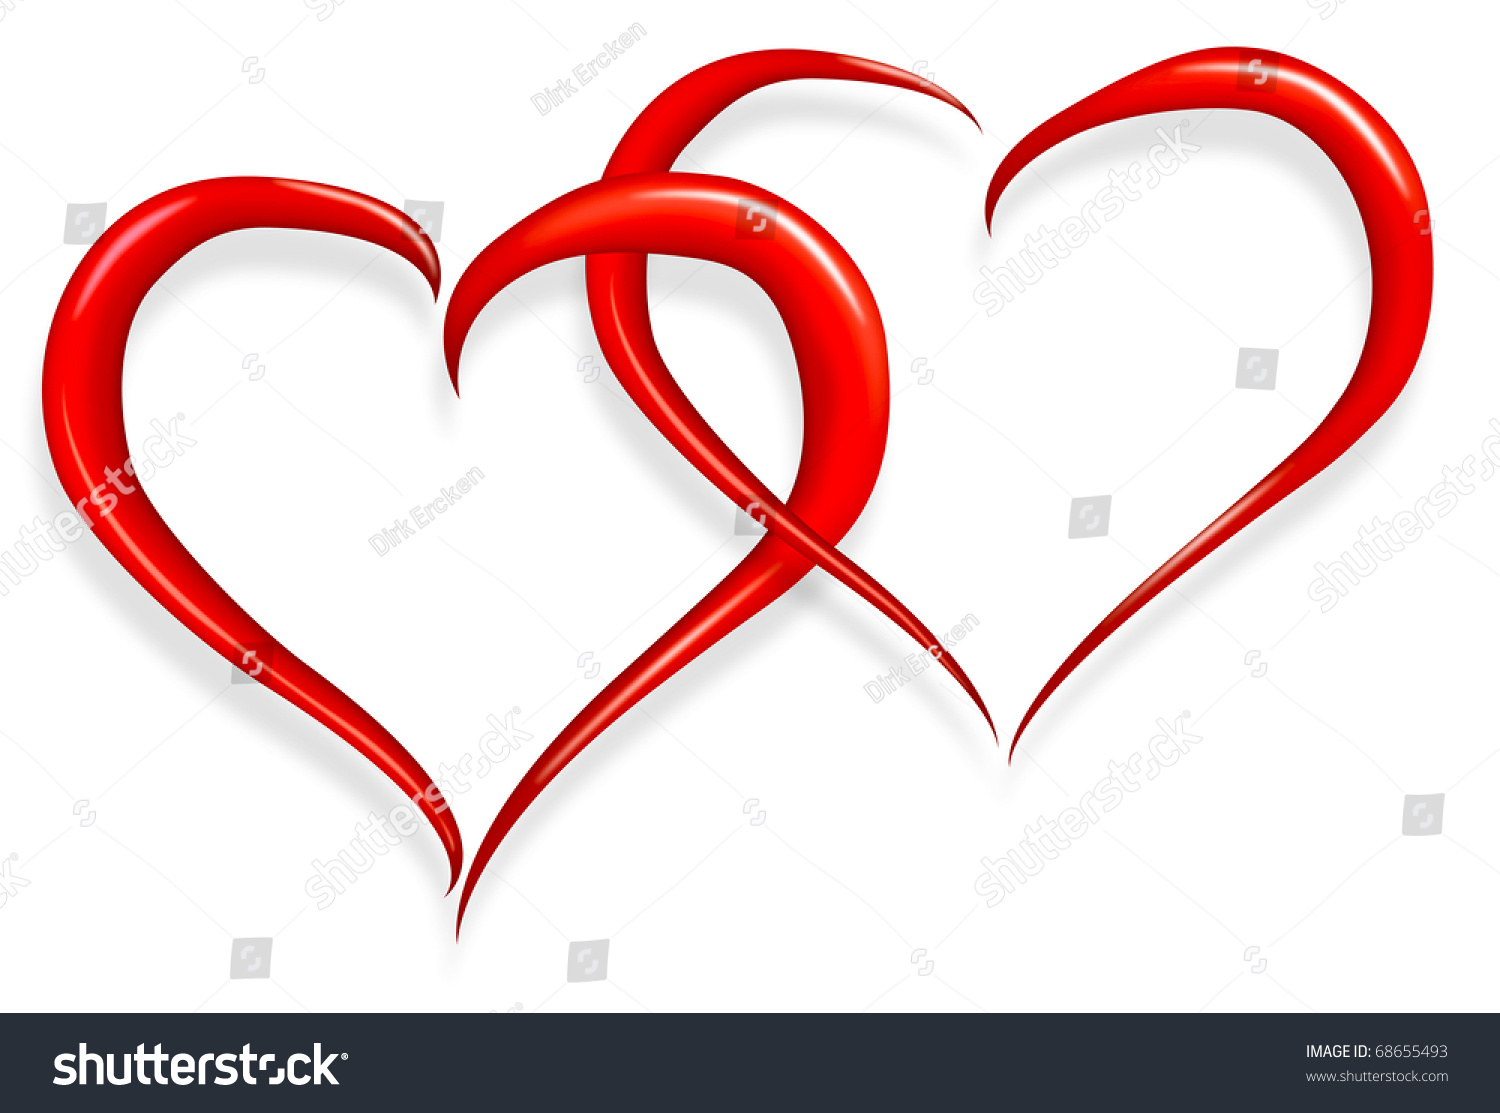 red love heart happy valentines day stock illustration - royalty